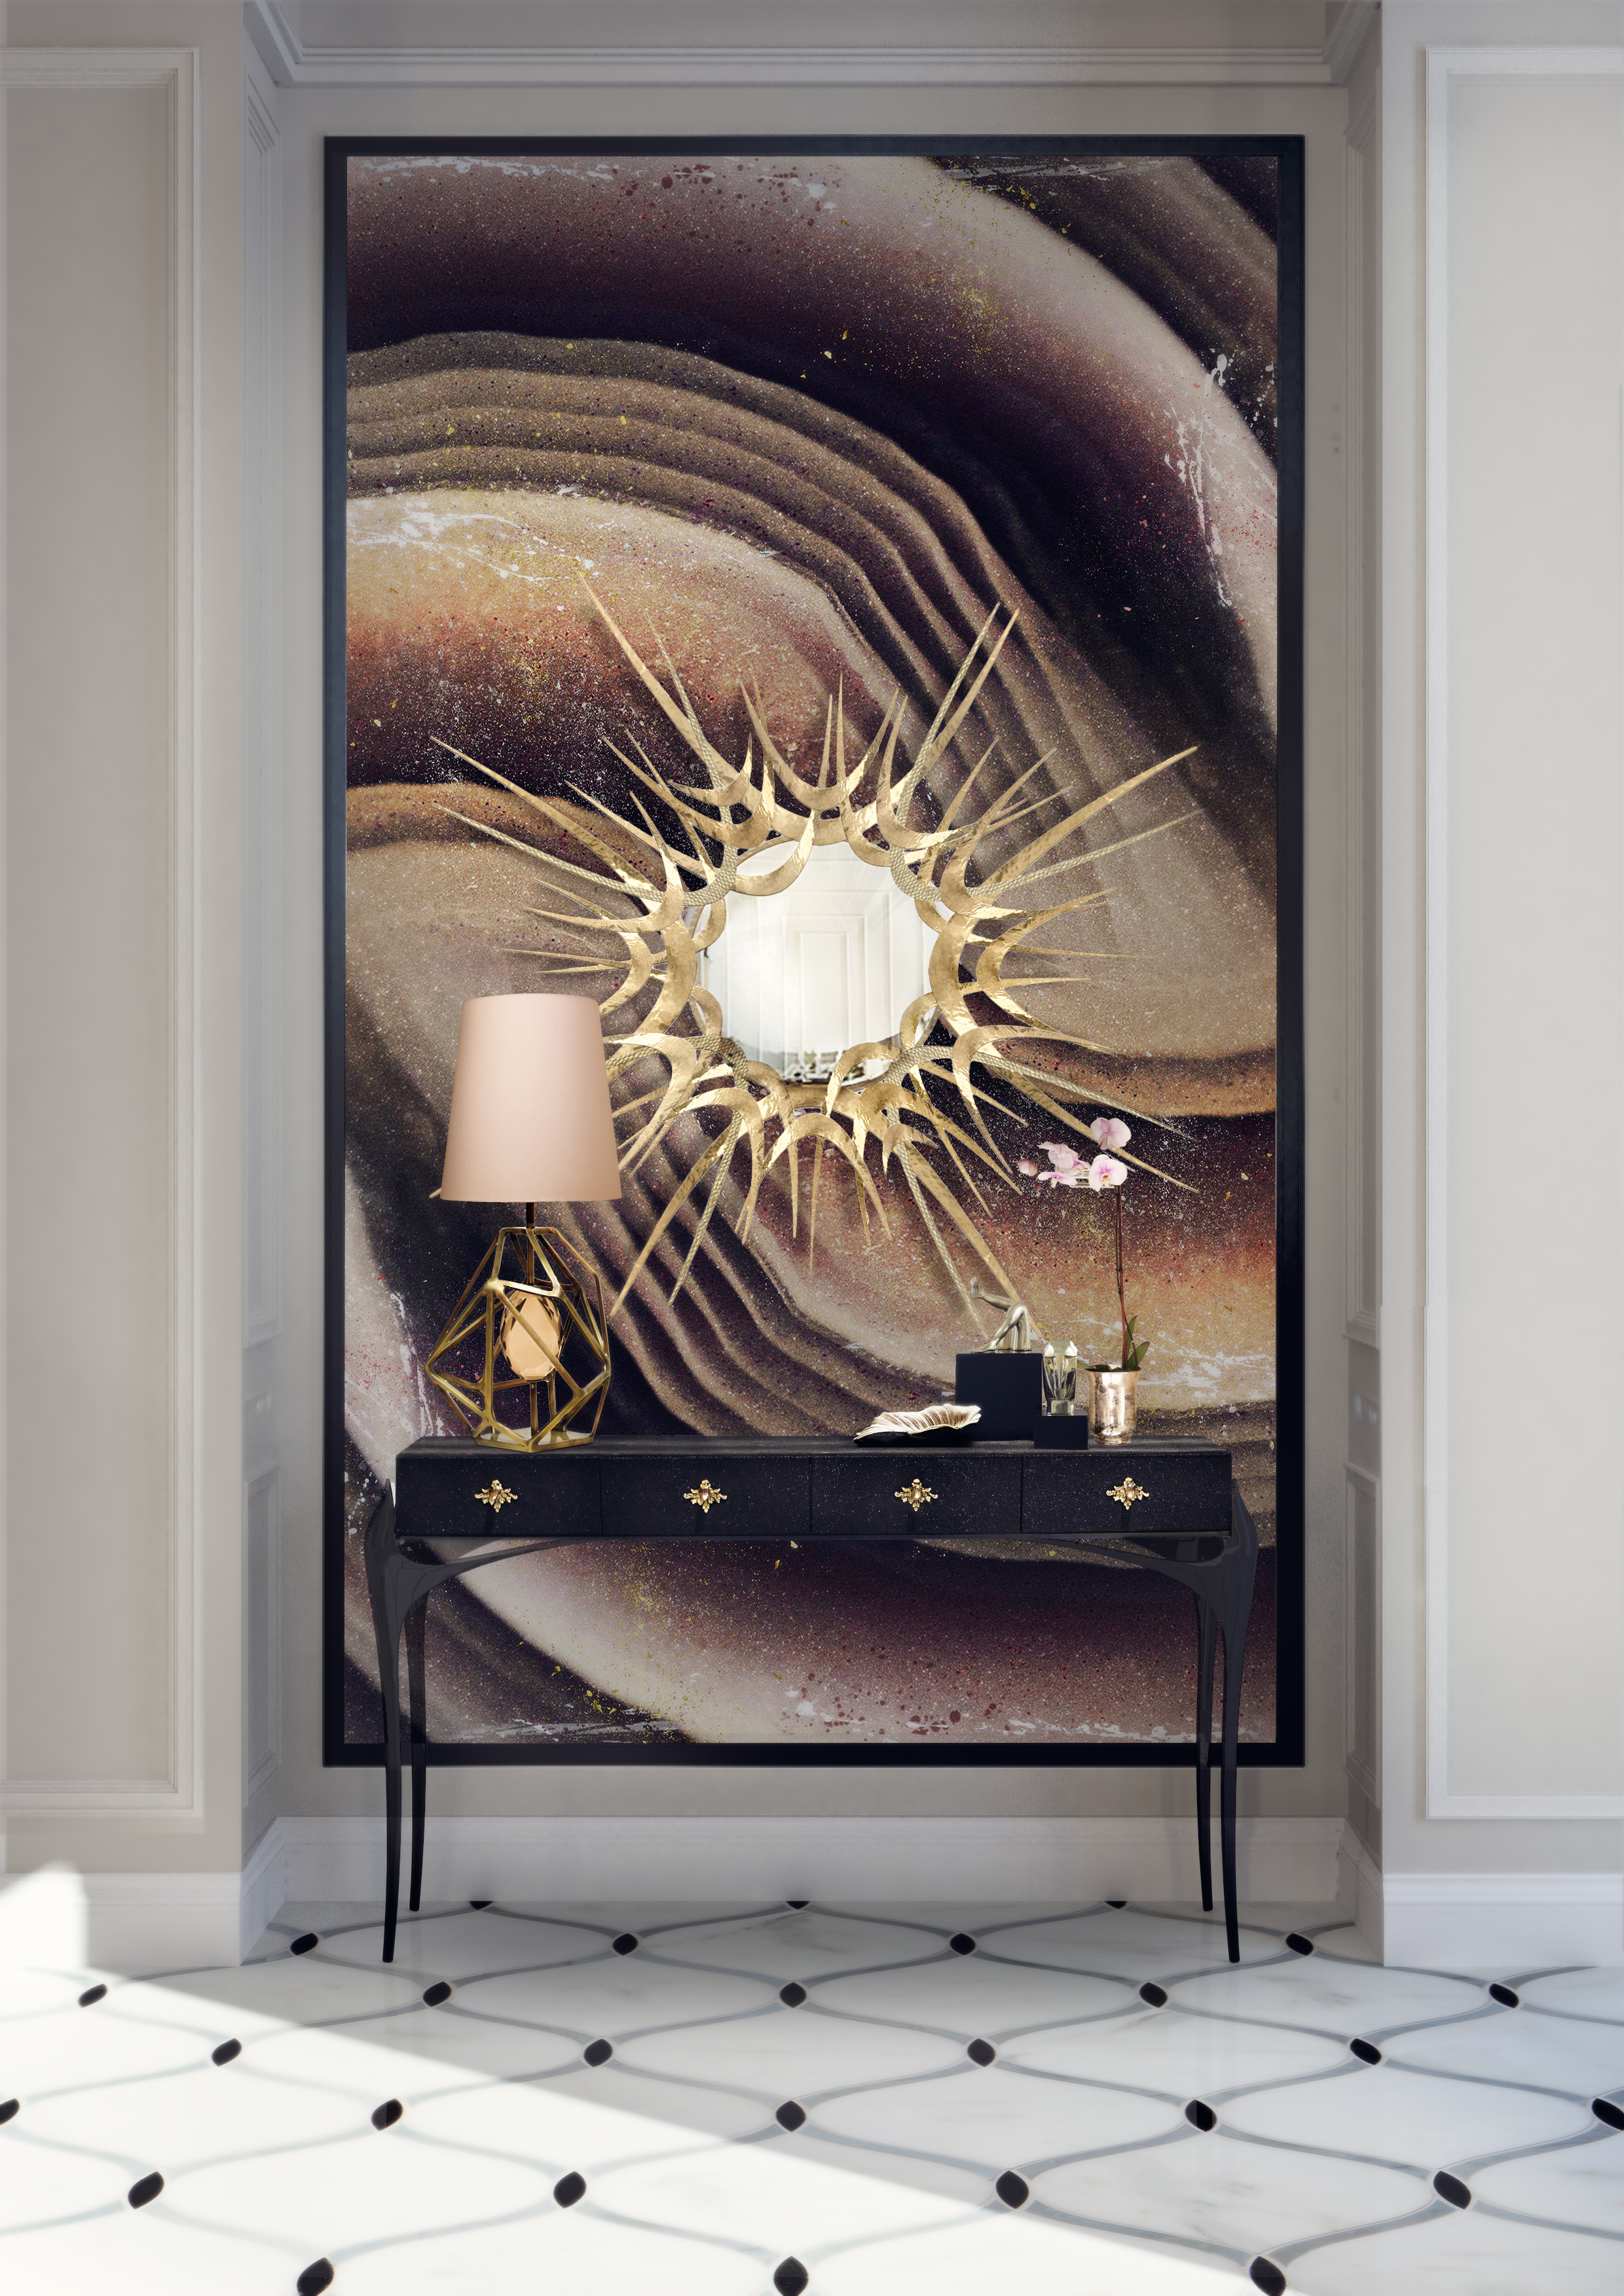 10 Amazing Design Pieces by KOKET that will be at Maison et Objet 2017 maison et objet 2017 Amazing Design Pieces by KOKET that will be at Maison et Objet 2017 10 Amazing Design Pieces by KOKET that will be at Maison et Objet 20172